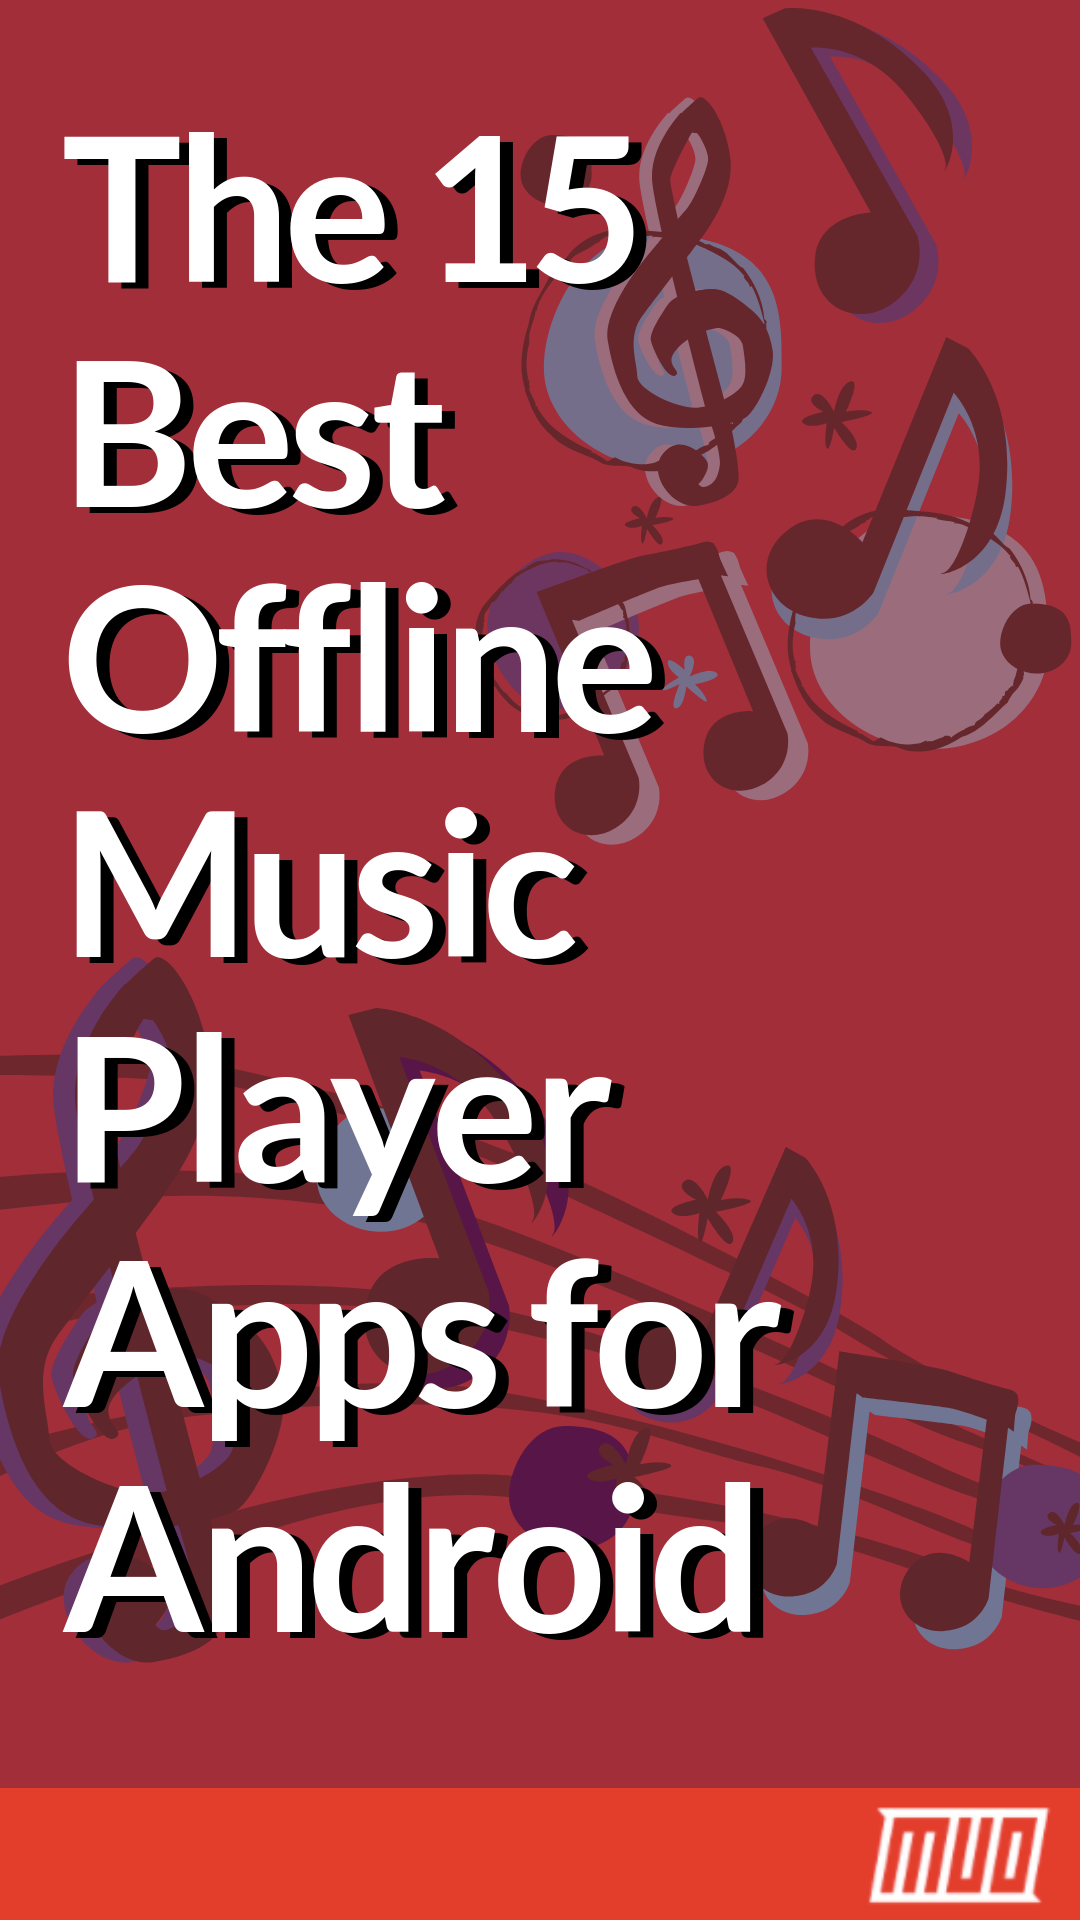 The 15 Best Offline Music Player Apps For Android Android